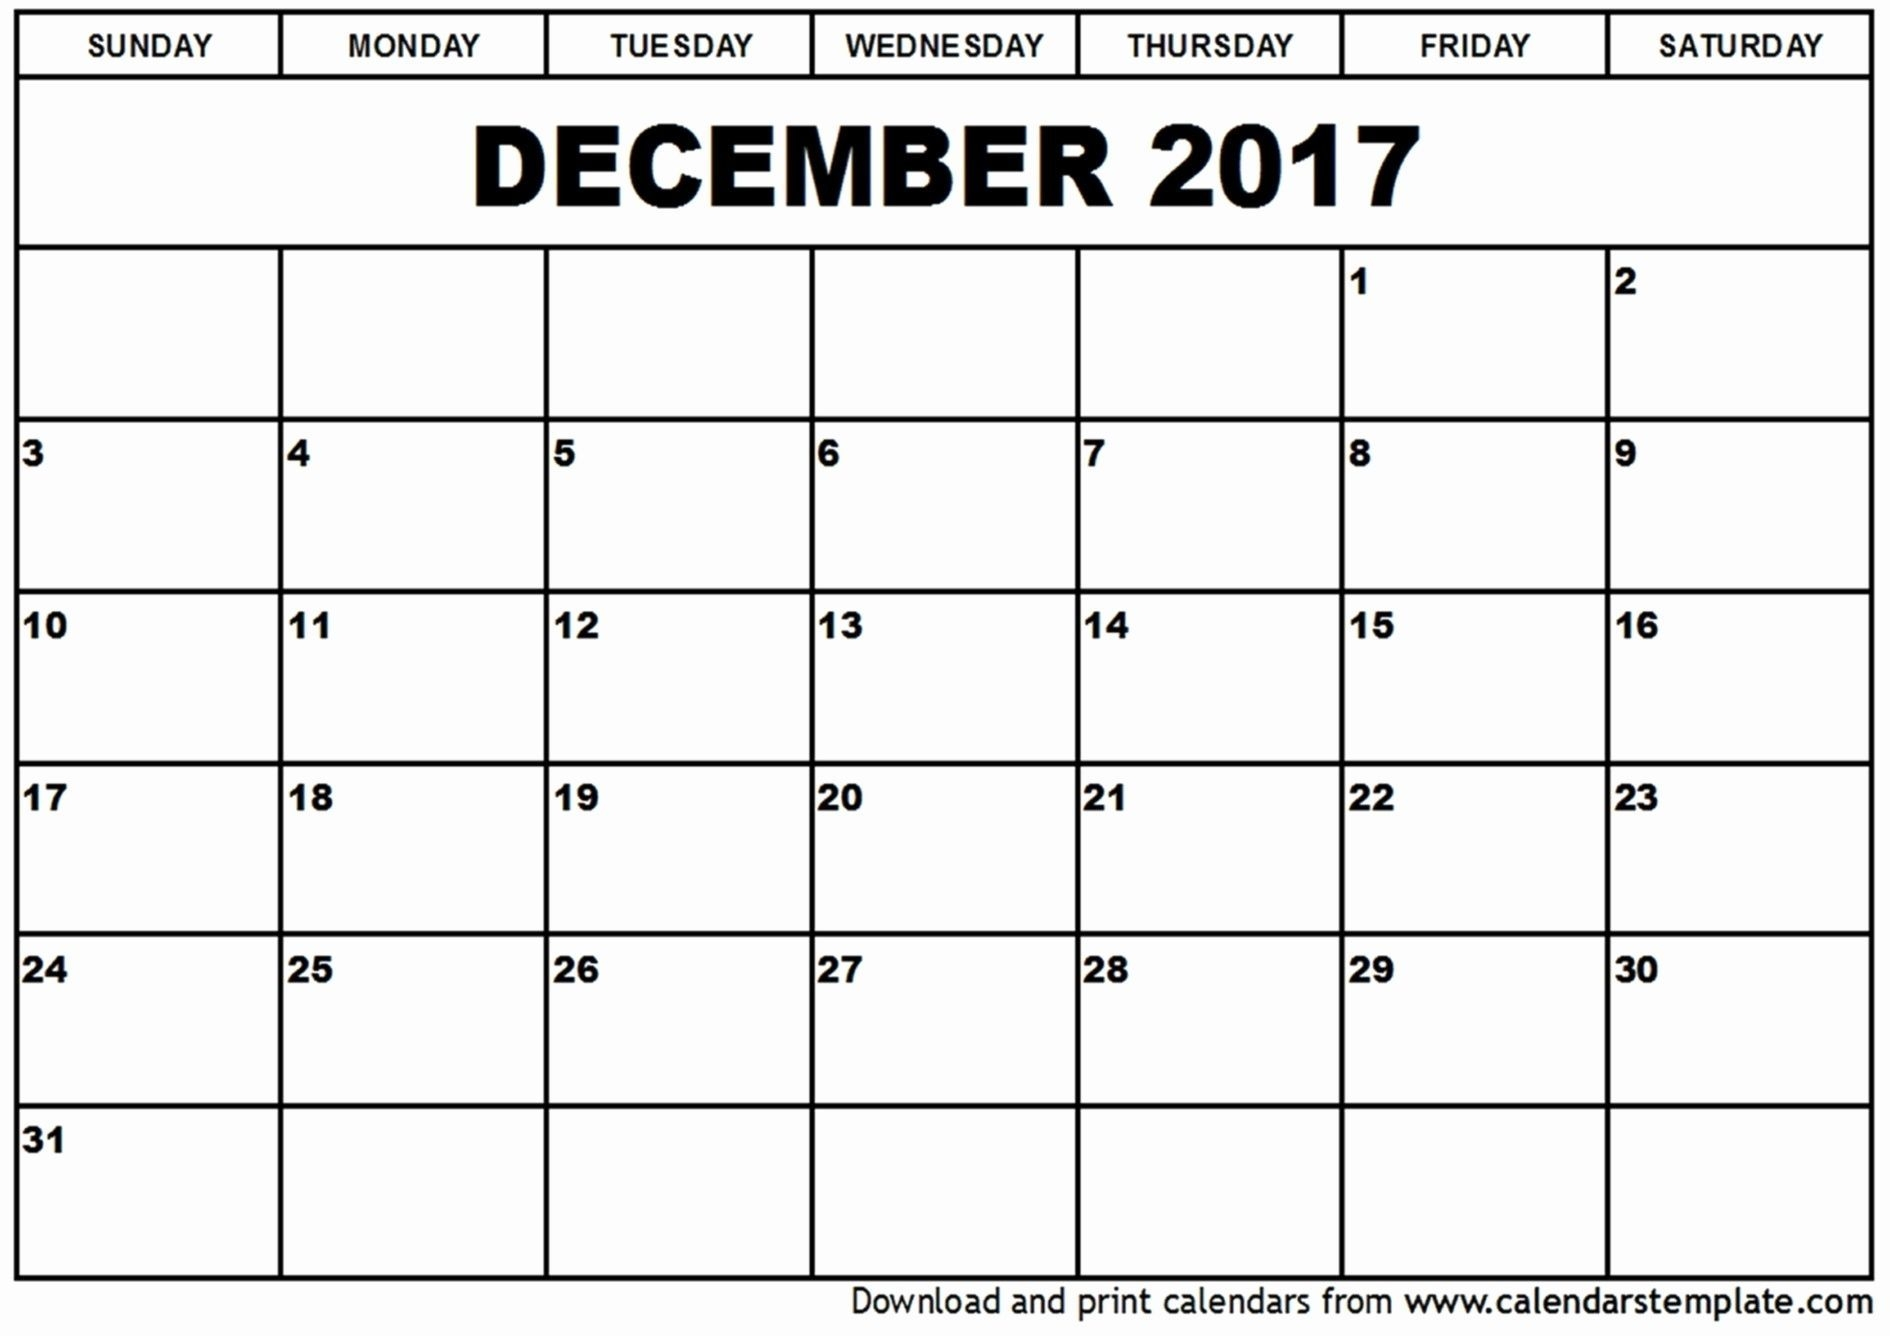 printable calendar i can type on in 2020 | monthly calendar